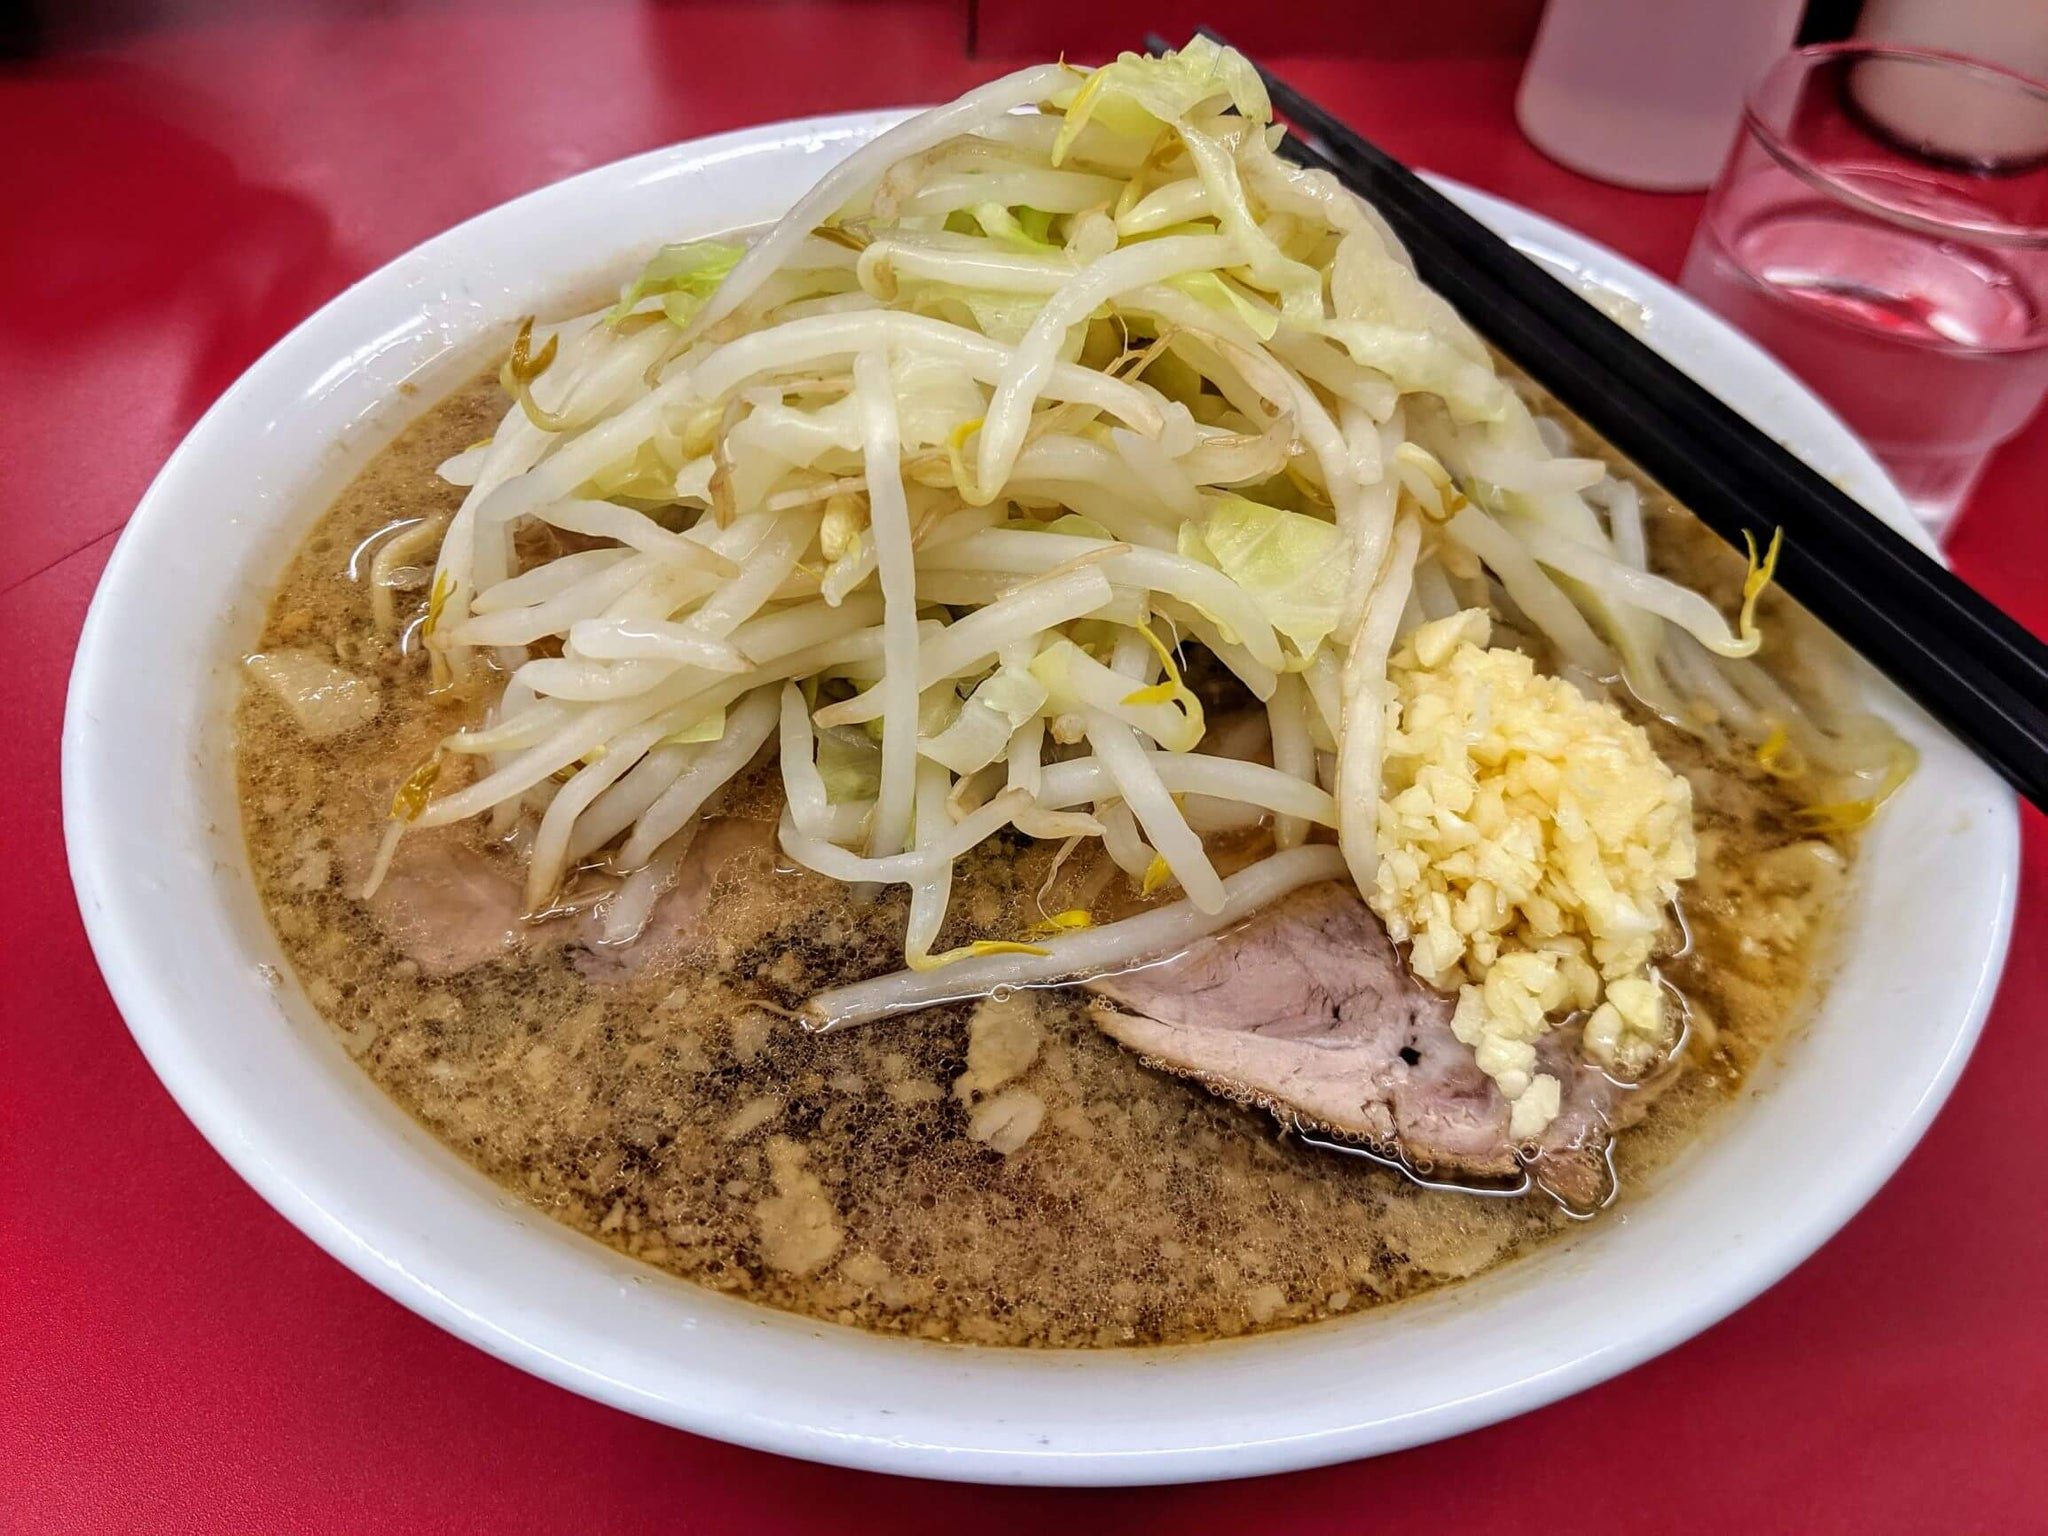 Jiro ramen, pork broth ramen topped with bean sprout, cabbage, roasted pork and minced garlic